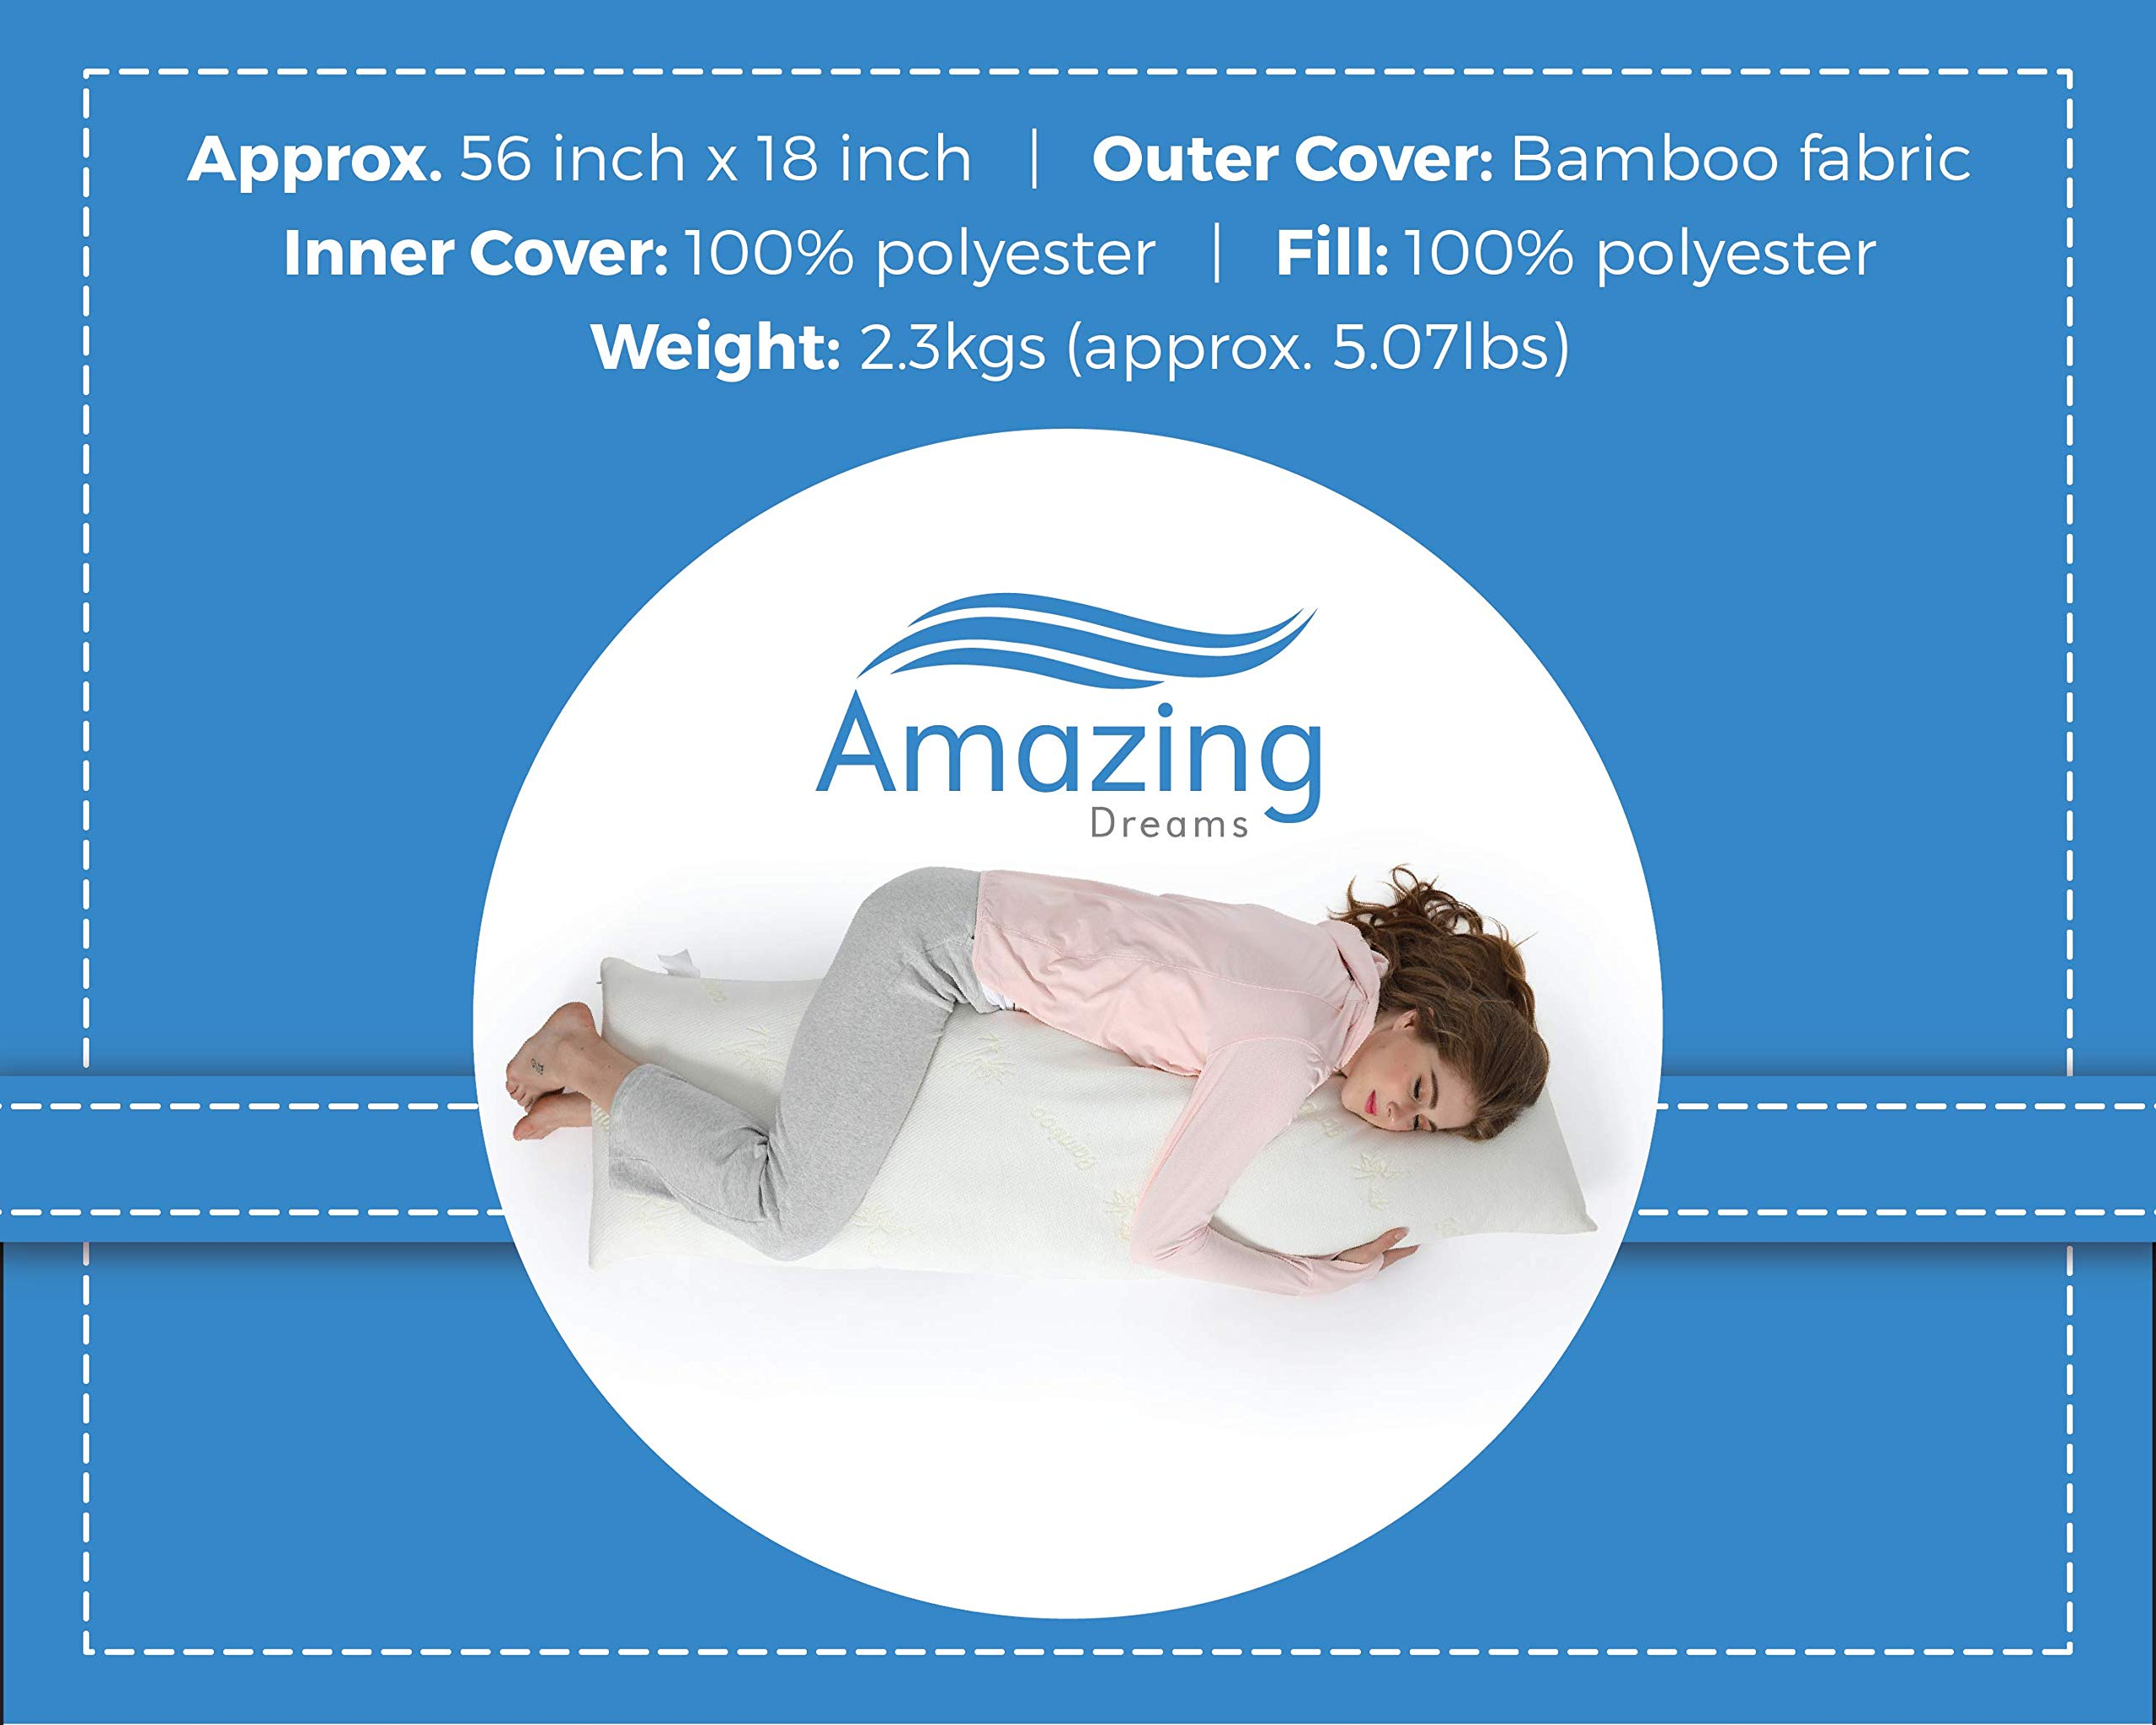 AmazingDreams Full Body Pillow - Side Sleeper Pillow and Pregnancy Pillow with Washable Bamboo Cover by Amazing Dreams (Image #6)